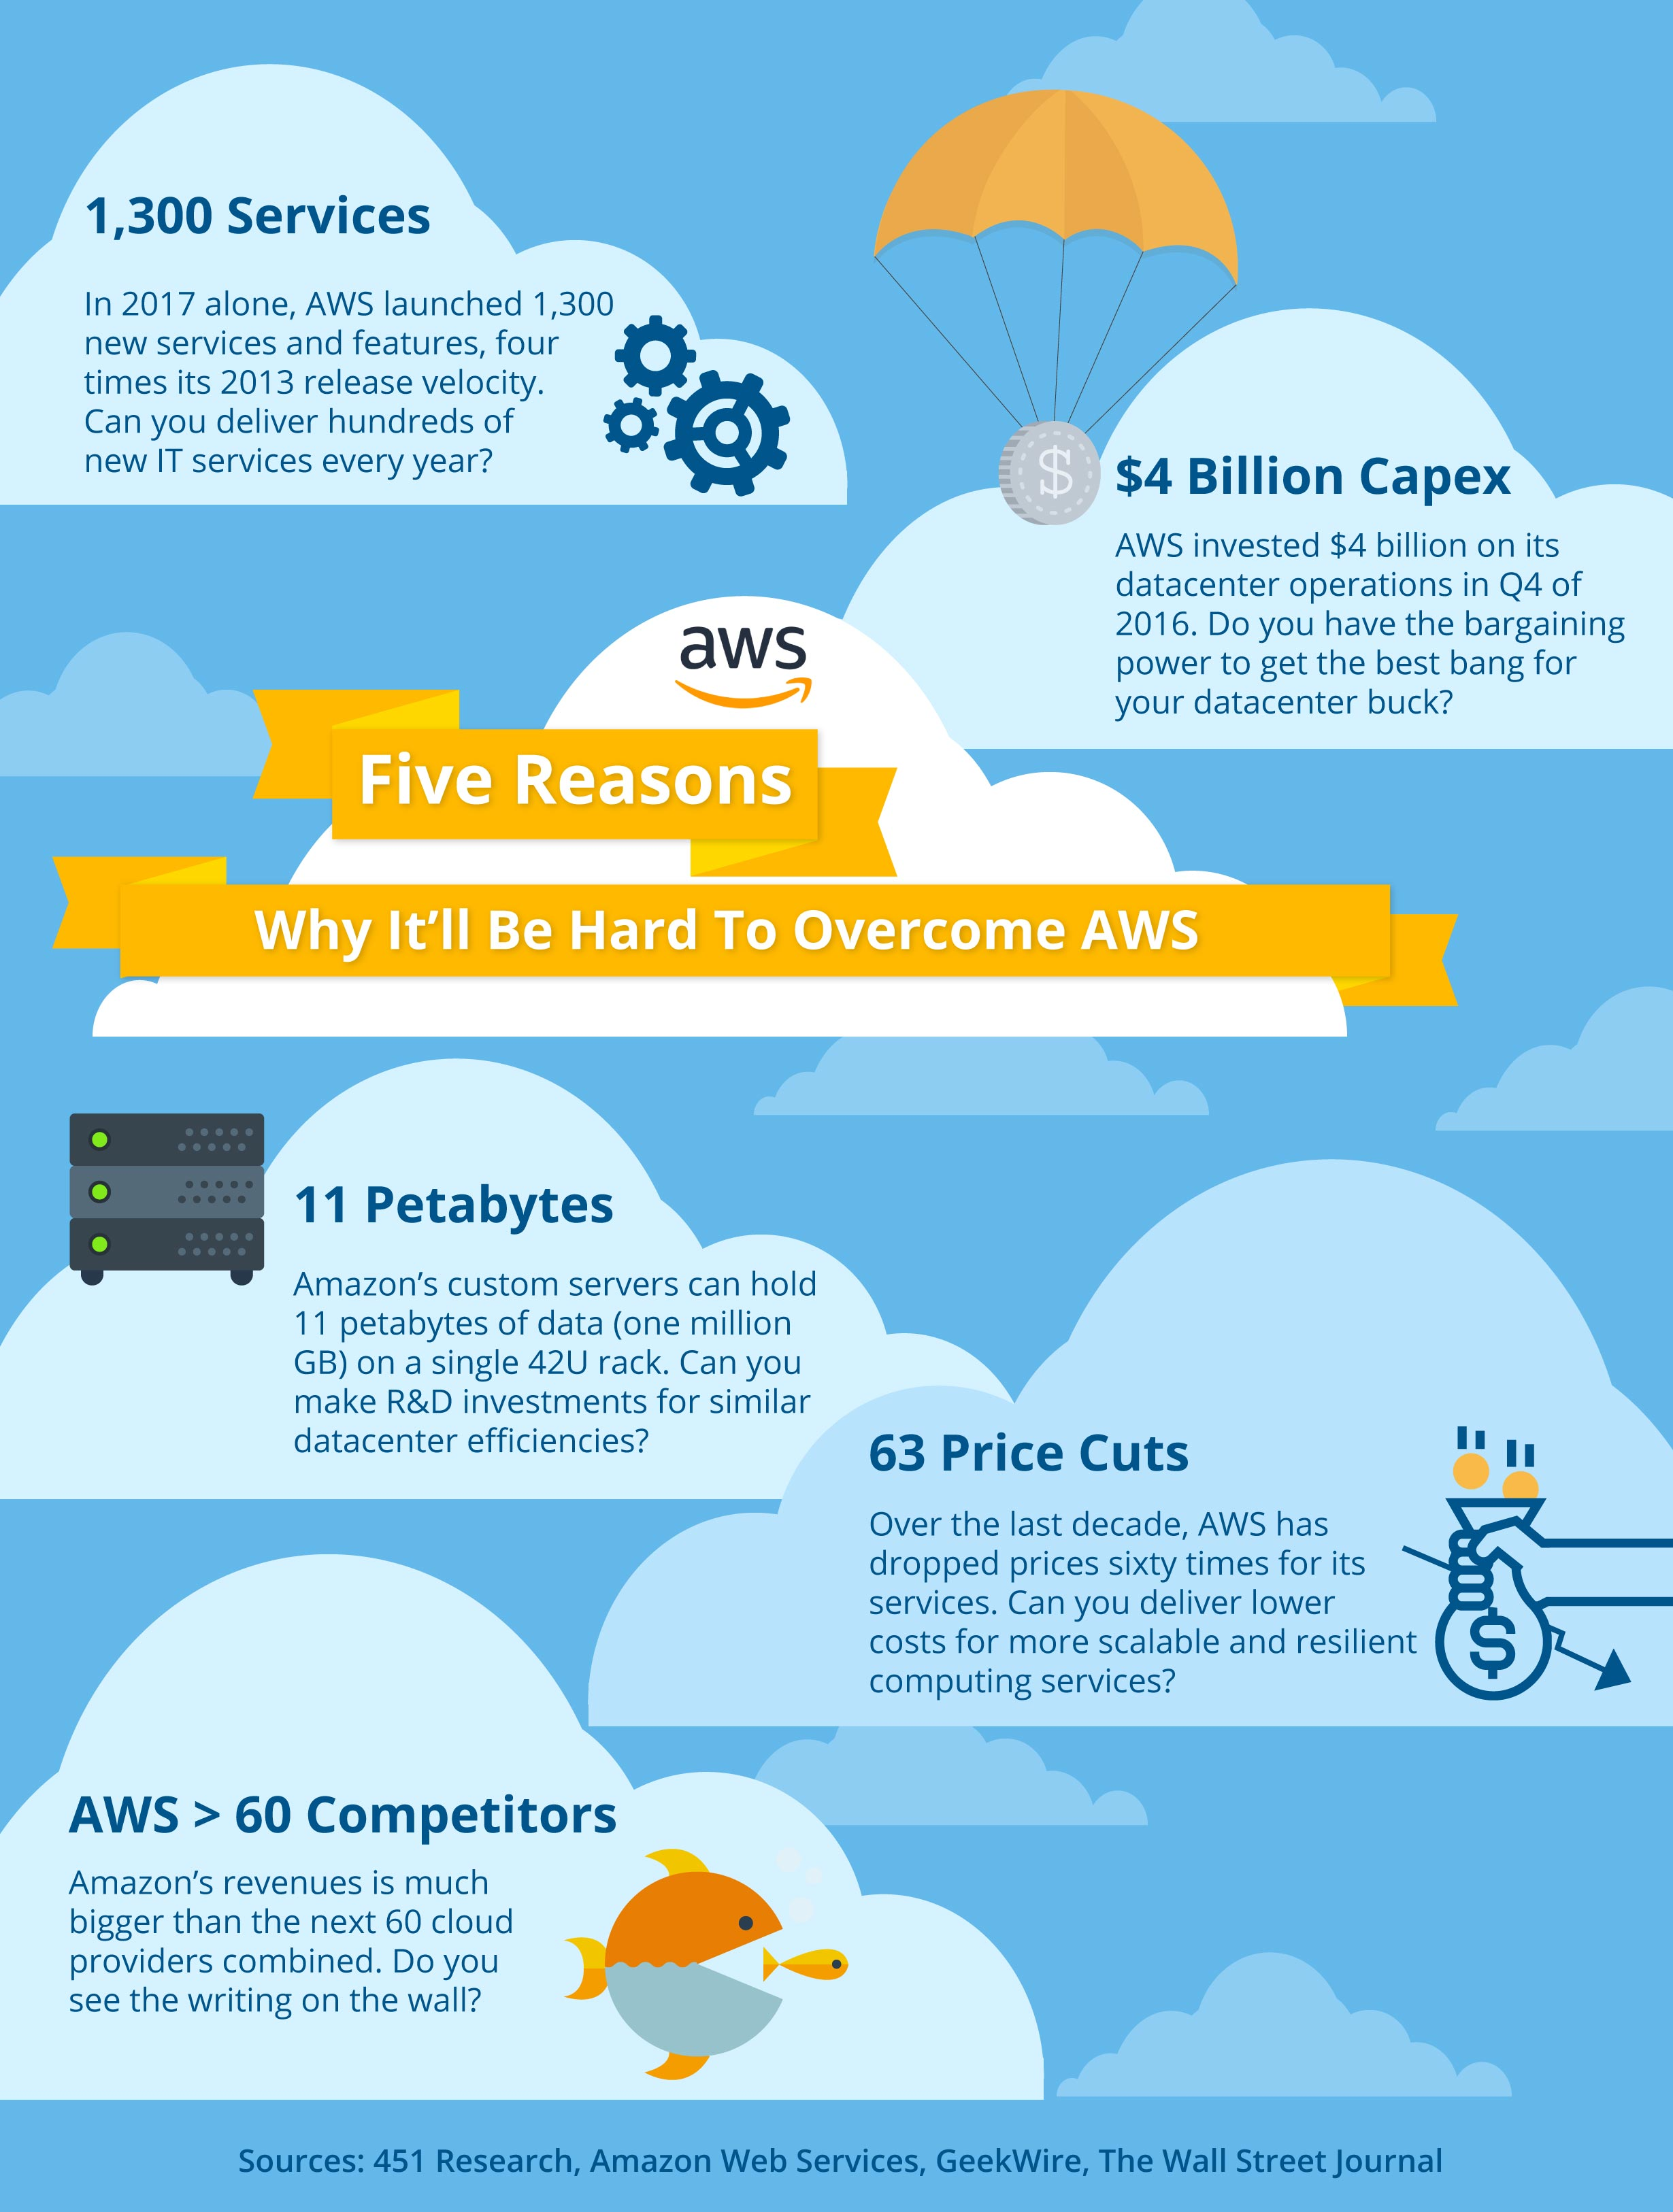 5 Reasons Why It'll Be Hard To Overcome AWS